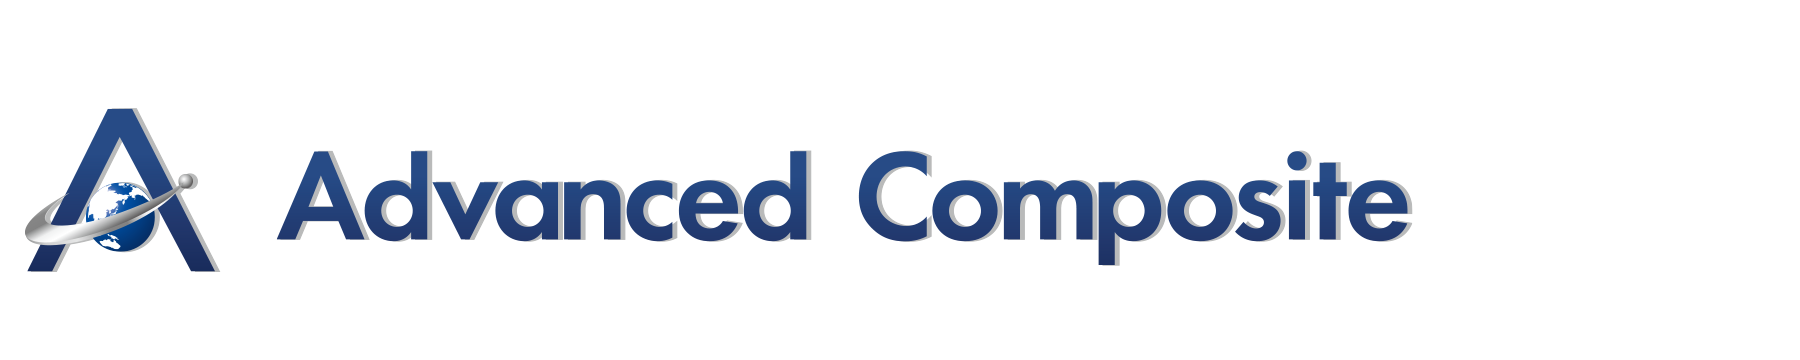 Advanced Composite Co. Ltd.